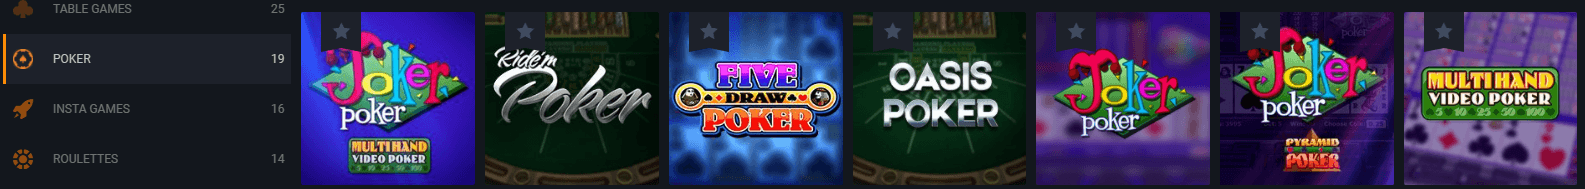 Can You Really Find TOP GGBET AUTOMATENSPIELE on the Web?